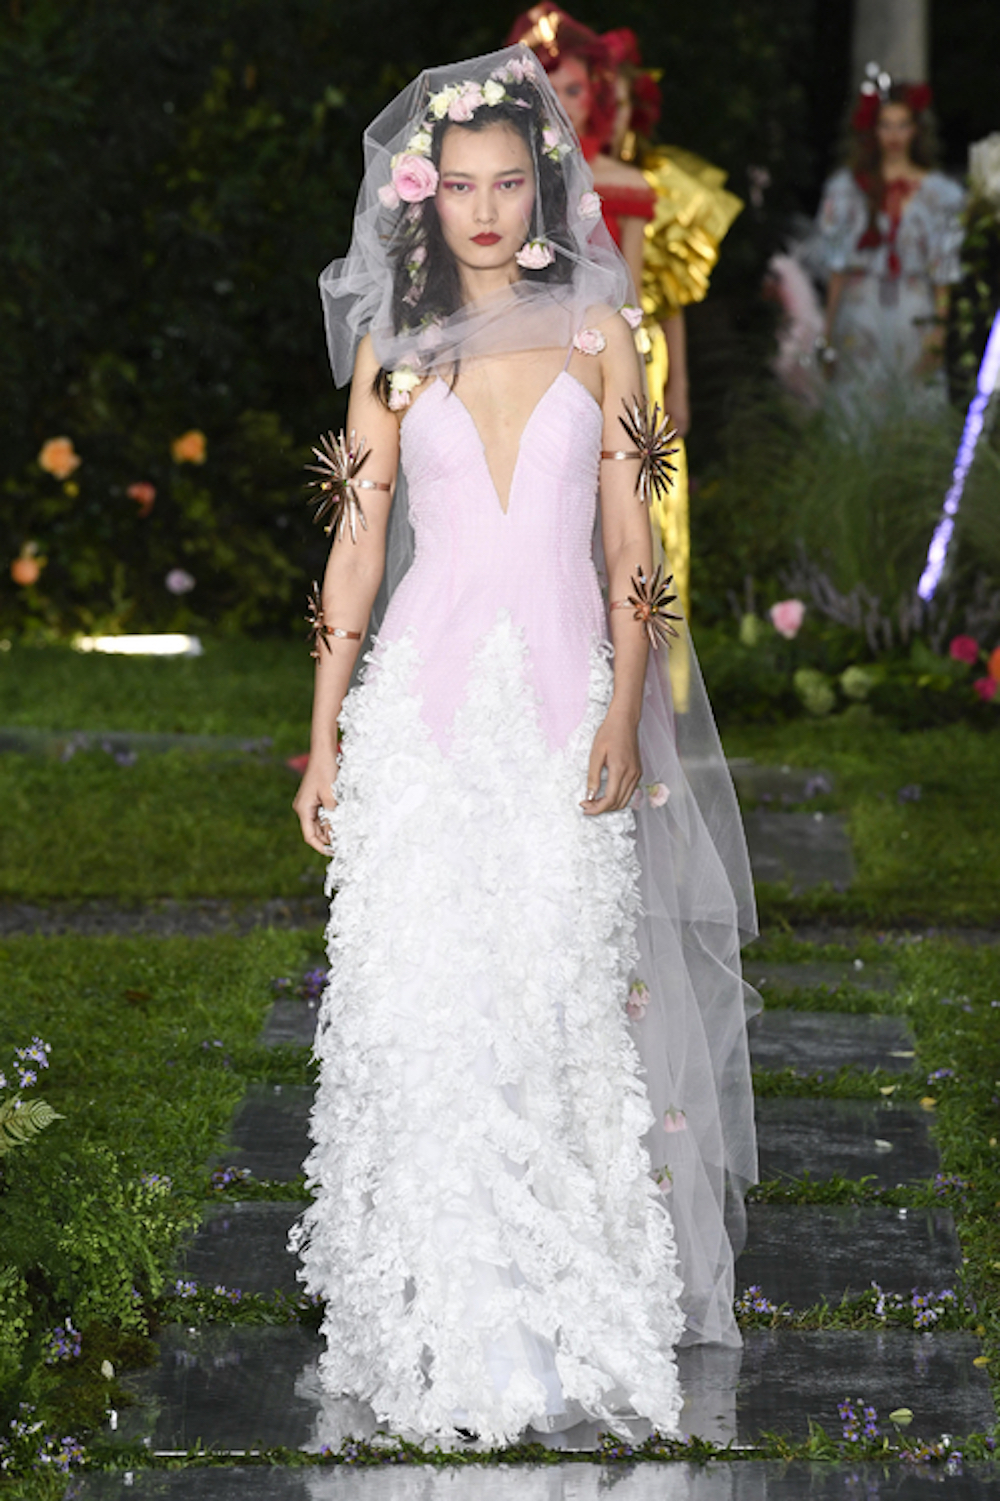 studio-ohlala-wedding-beauty-business-tips-blog-paris-wedding-dress-rodarte-2.jpg